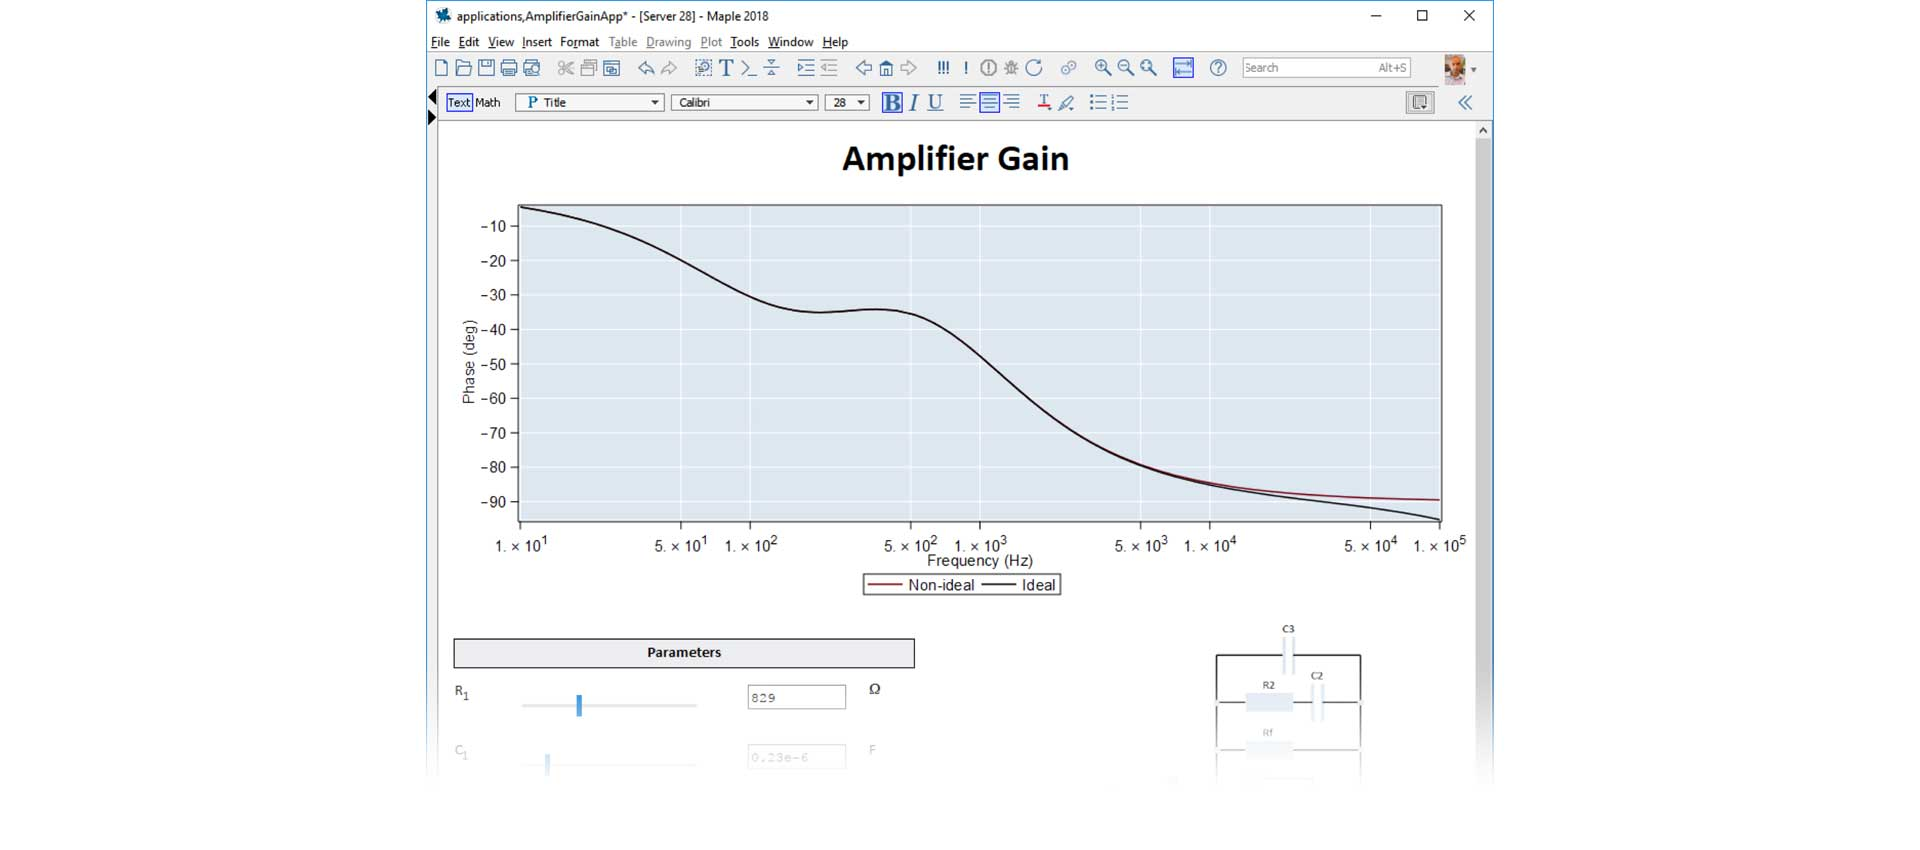 Deployable application for analyzing the gain of an amplifier